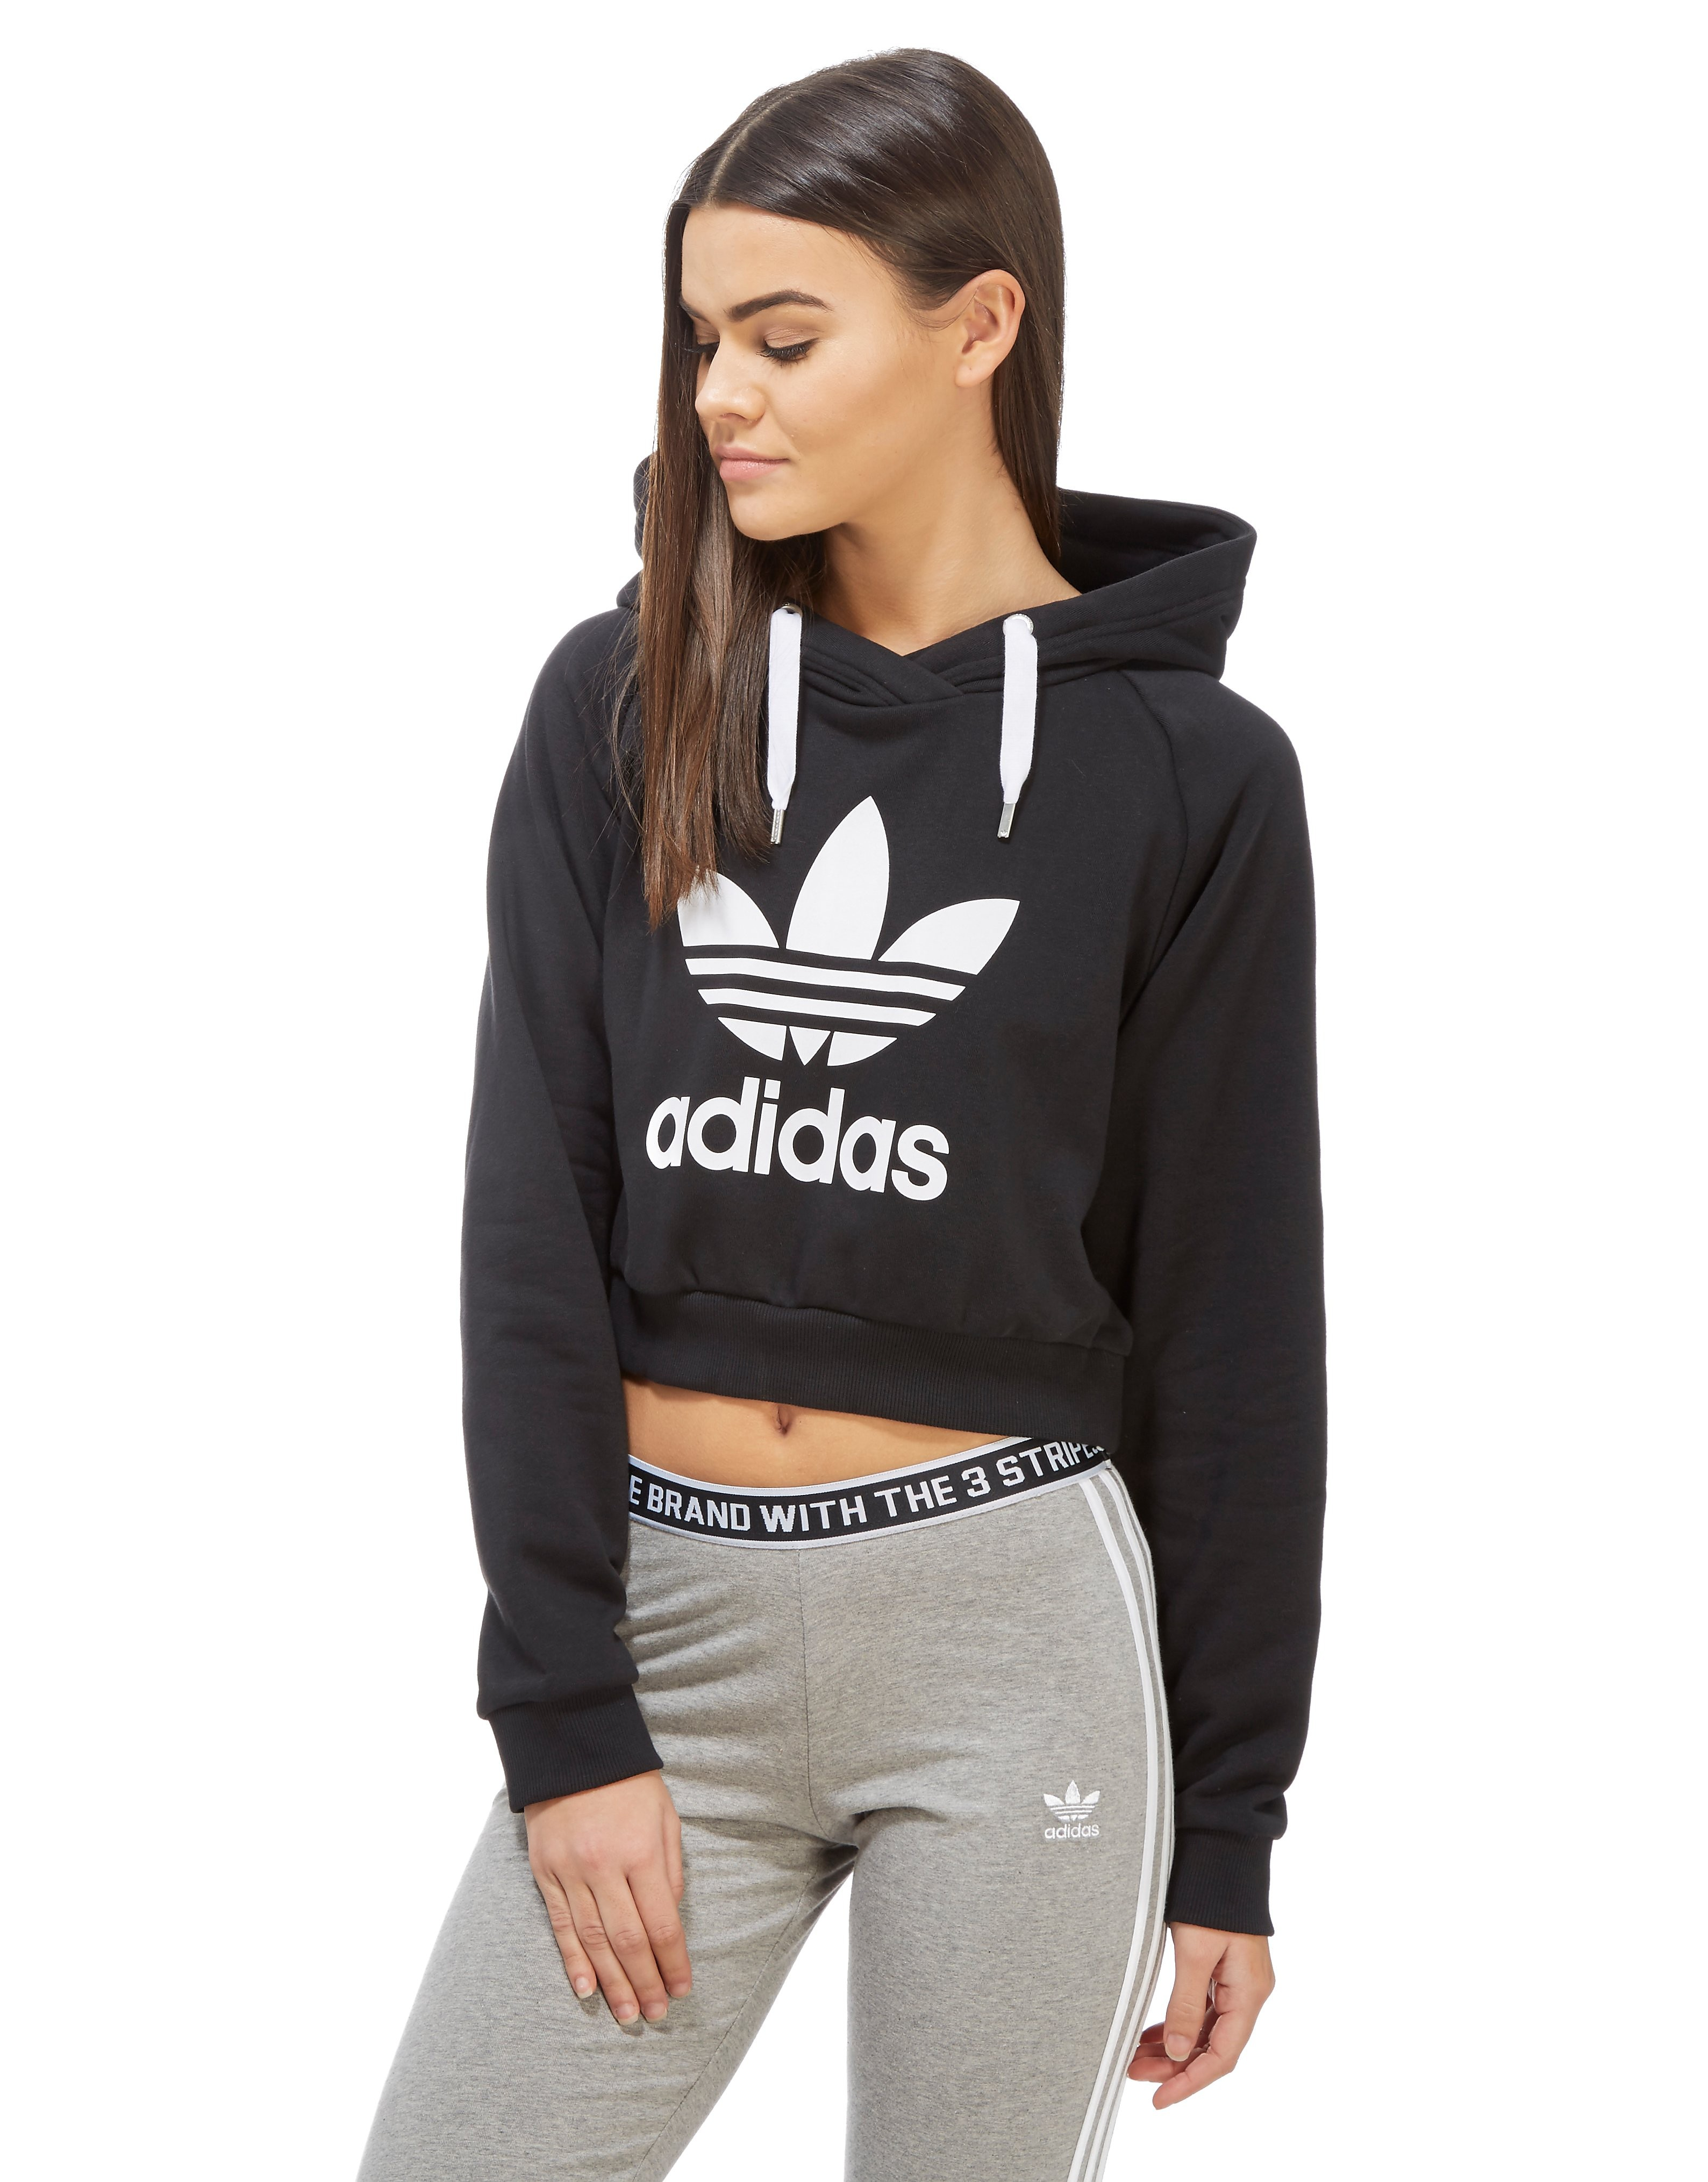 adidas Originals Trefoil Crop Hoody